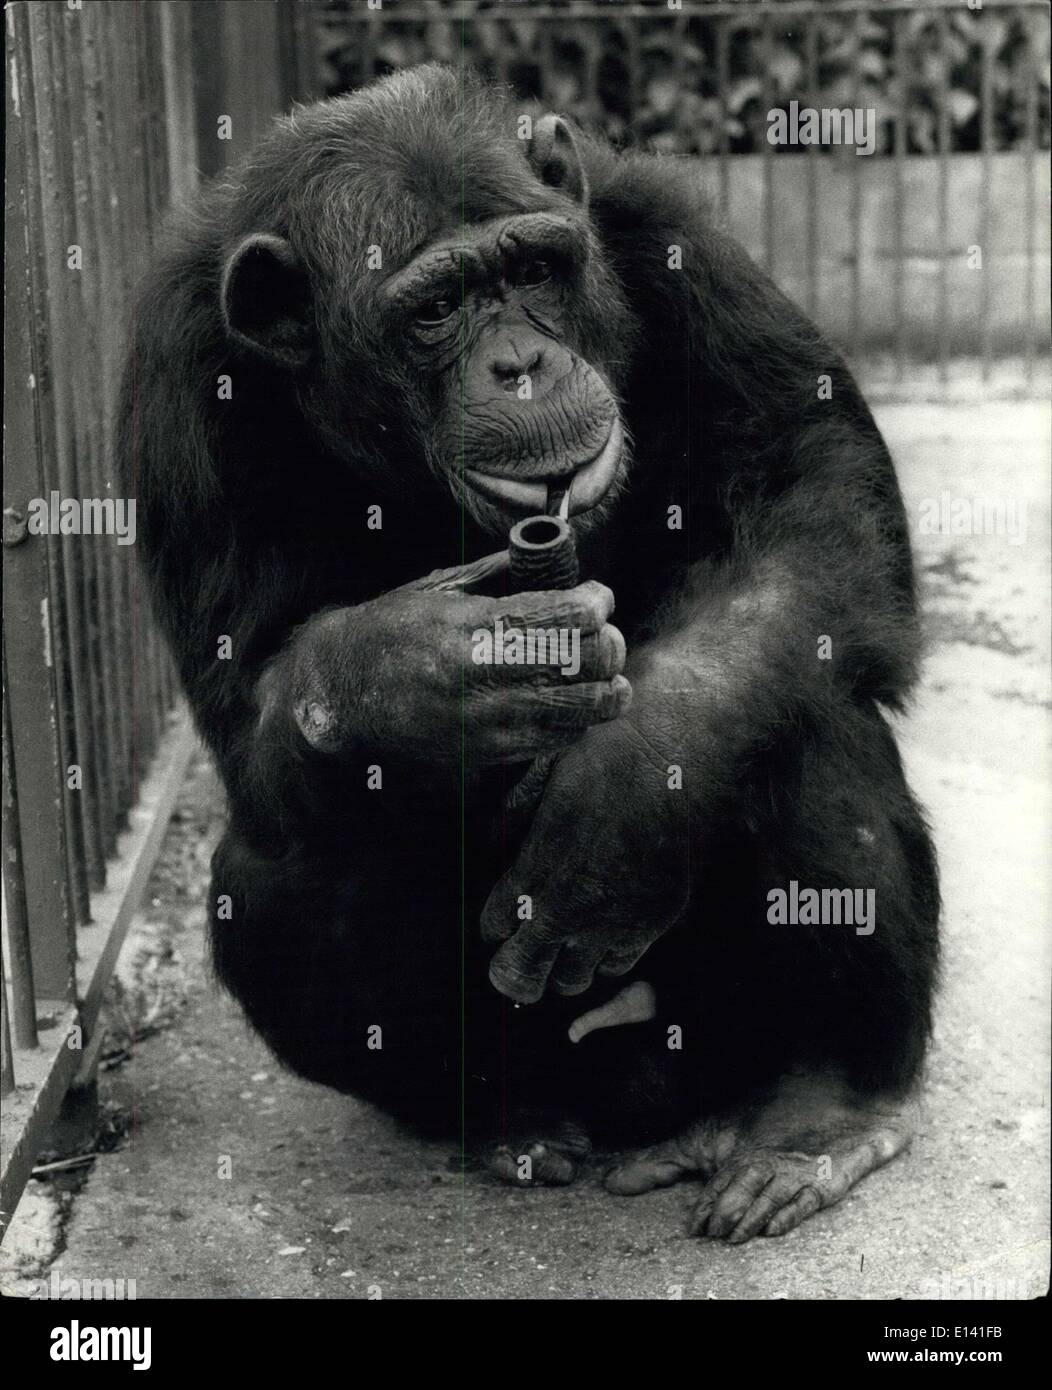 Mar. 31, 2012 - A Pipe's a Man's Best friend.: Williiam, 20-year old Chimpanzee at Cromer Zoo, has been a pipe man for nearly fifteen years. Since the anti-smoking campaign has gained strength in recent years, zoo Owner Mrs. Olga Kerr, has done her bestto wean his off the habit, but so far without much success. Without his best pal William just seems to pine and bedome a miserable old man: but with his favourite wood between his teeth, he's as happy as a sand boy! Once he did try a cigarette, but when he started to eat it, the trial discountinued quite rapidly! - Stock Image